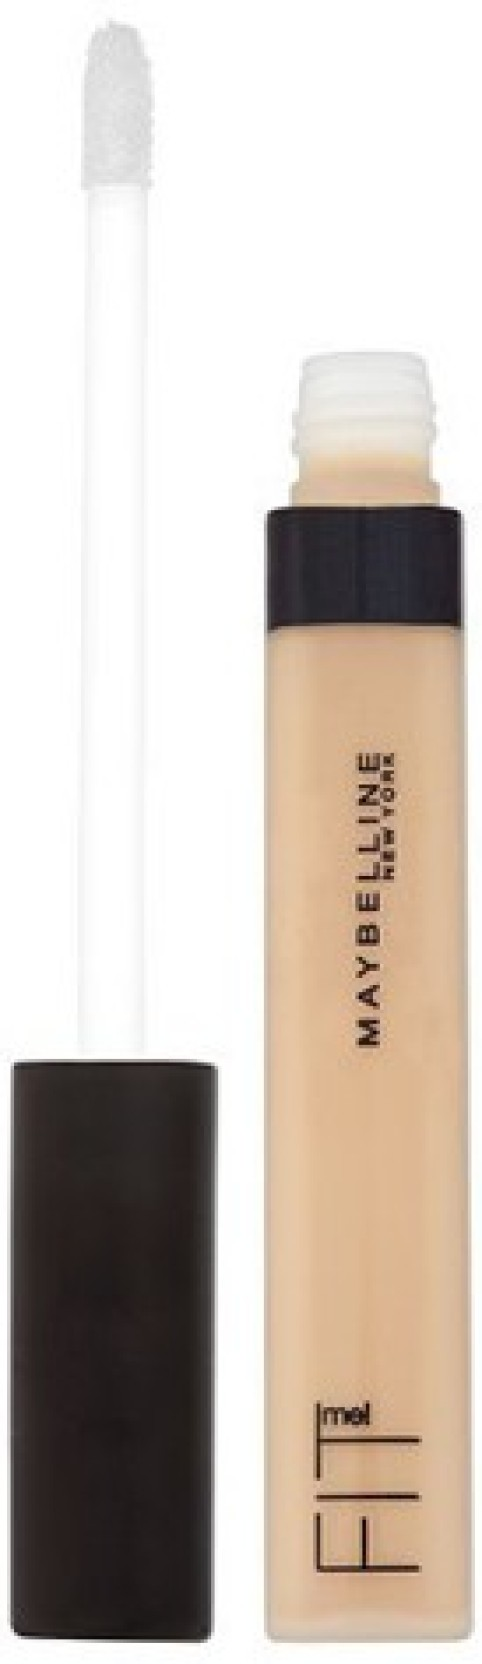 Maybelline Fit Me Concealer Price In India Buy Home